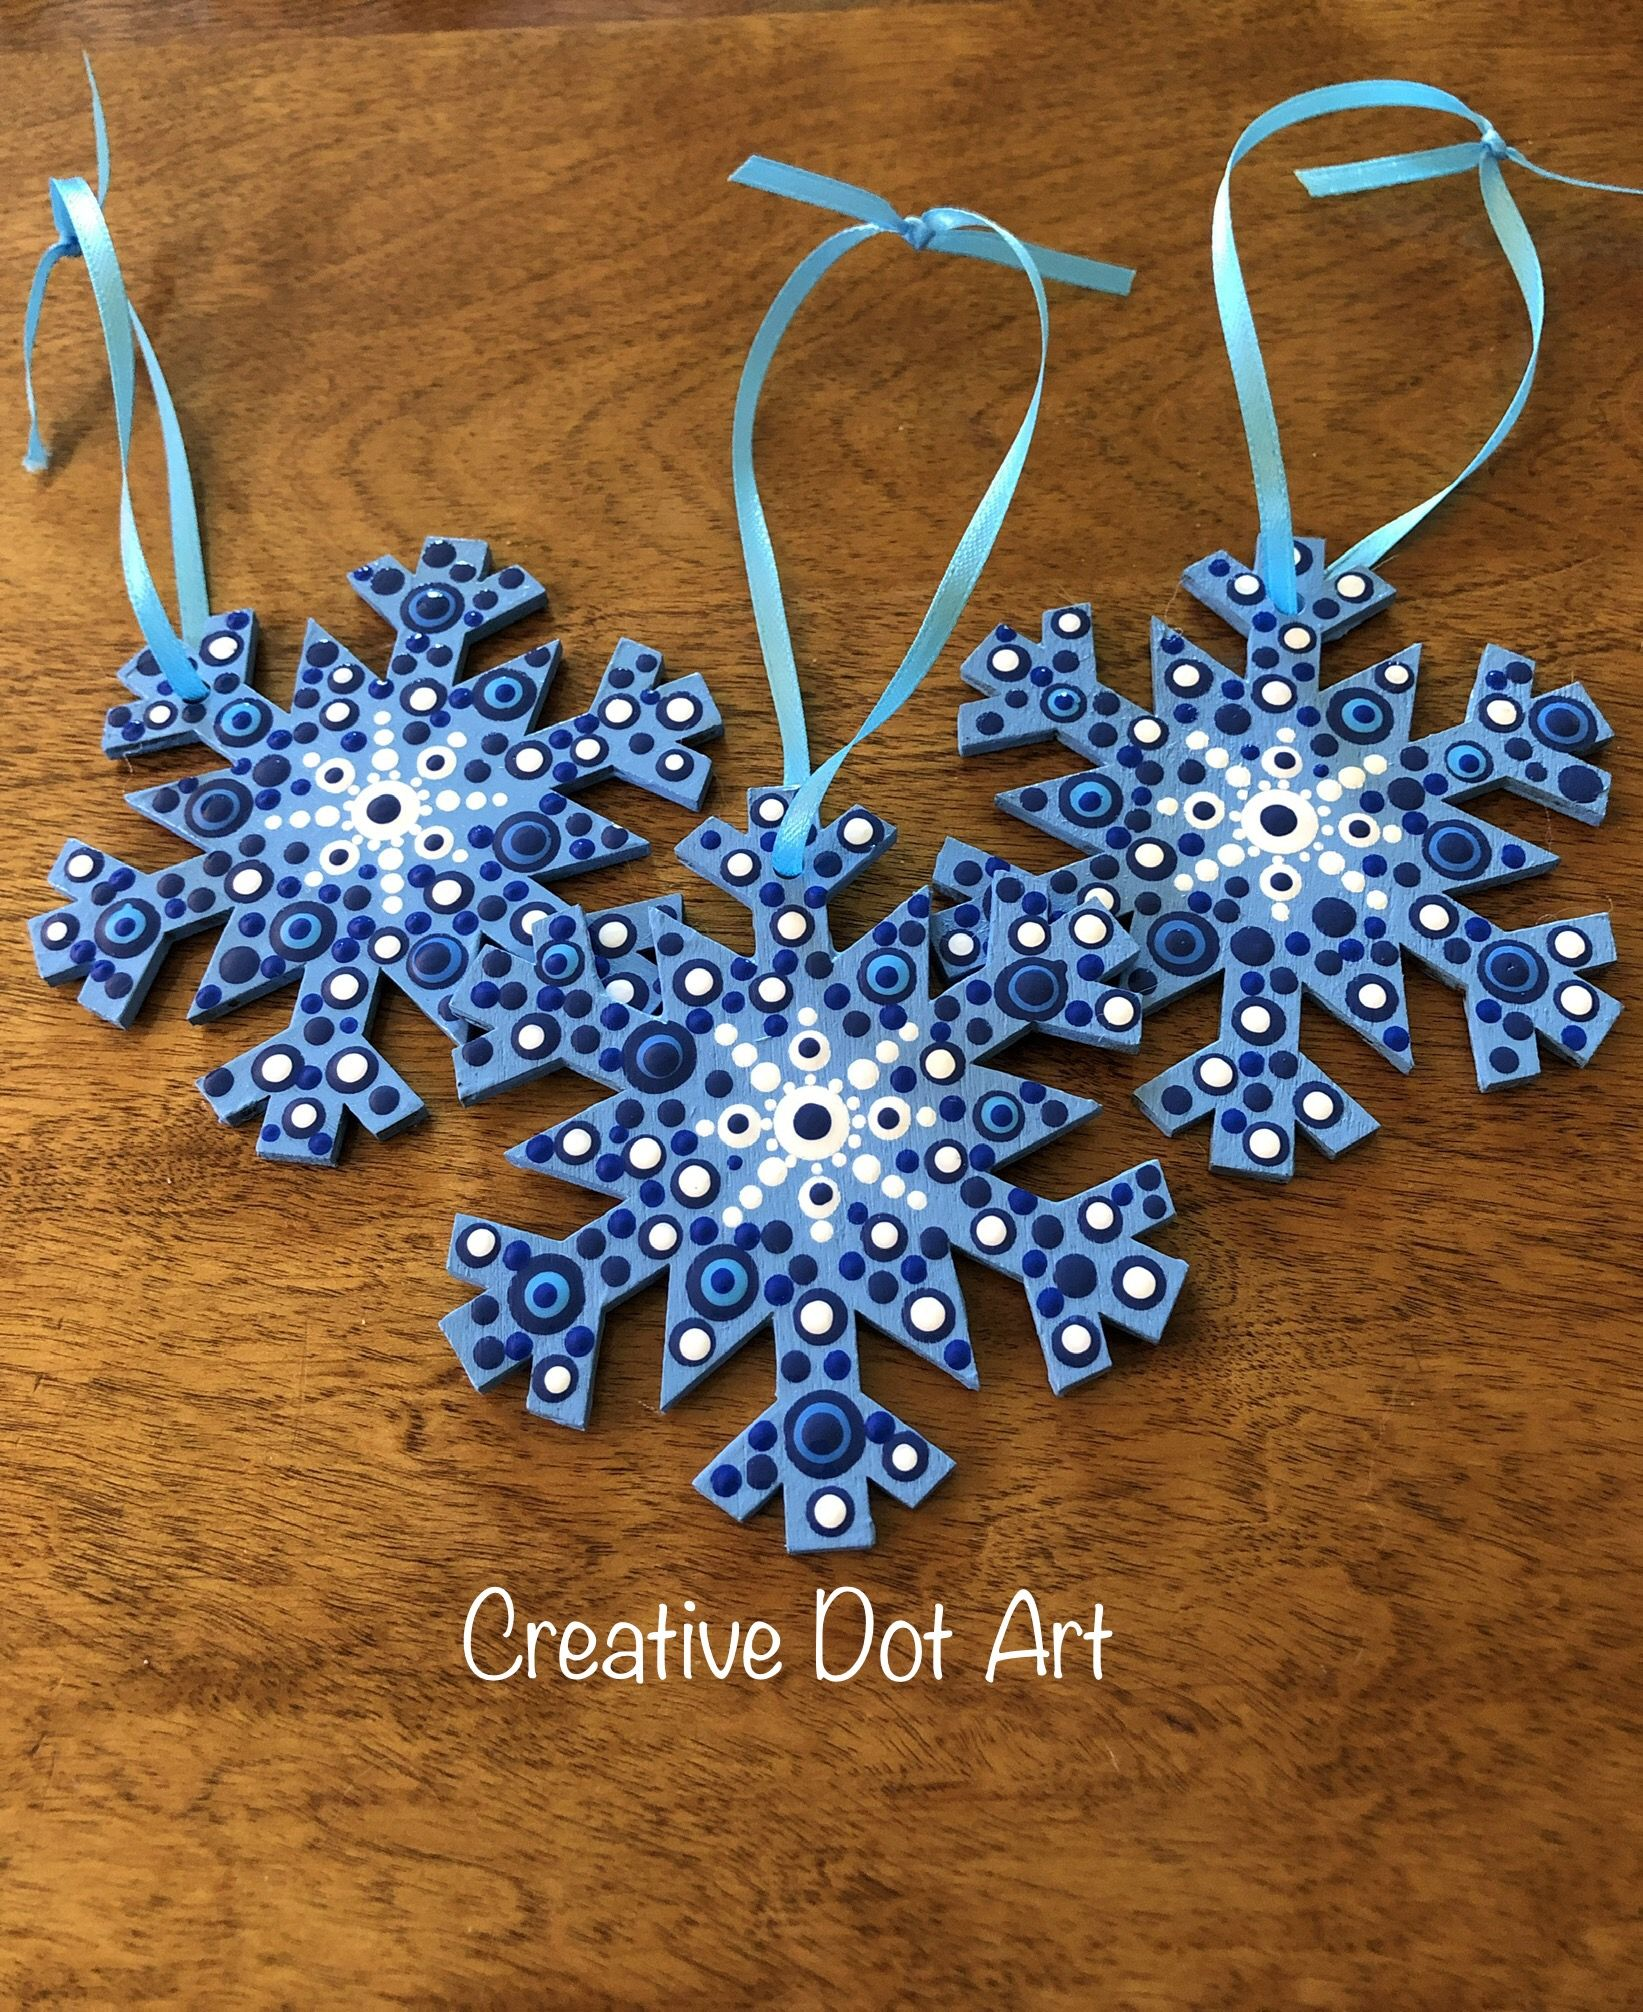 Dotted Wooden Snowflake Ornament Christmas Mandala Christmas Ornament Crafts Wooden Snowflakes